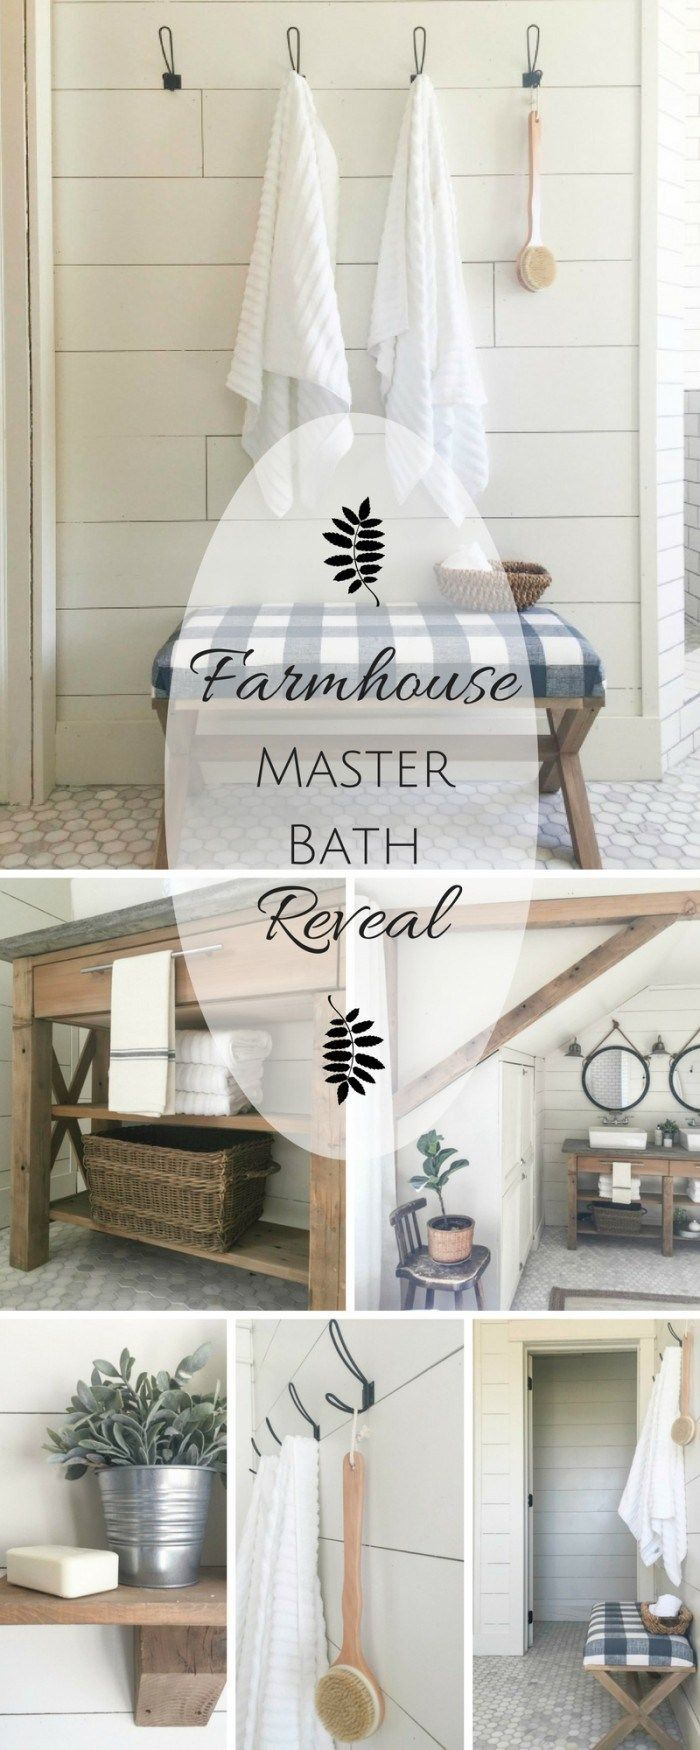 Bathroom Vanity Farmhouse best 25+ farmhouse vanity ideas on pinterest | farmhouse bathroom